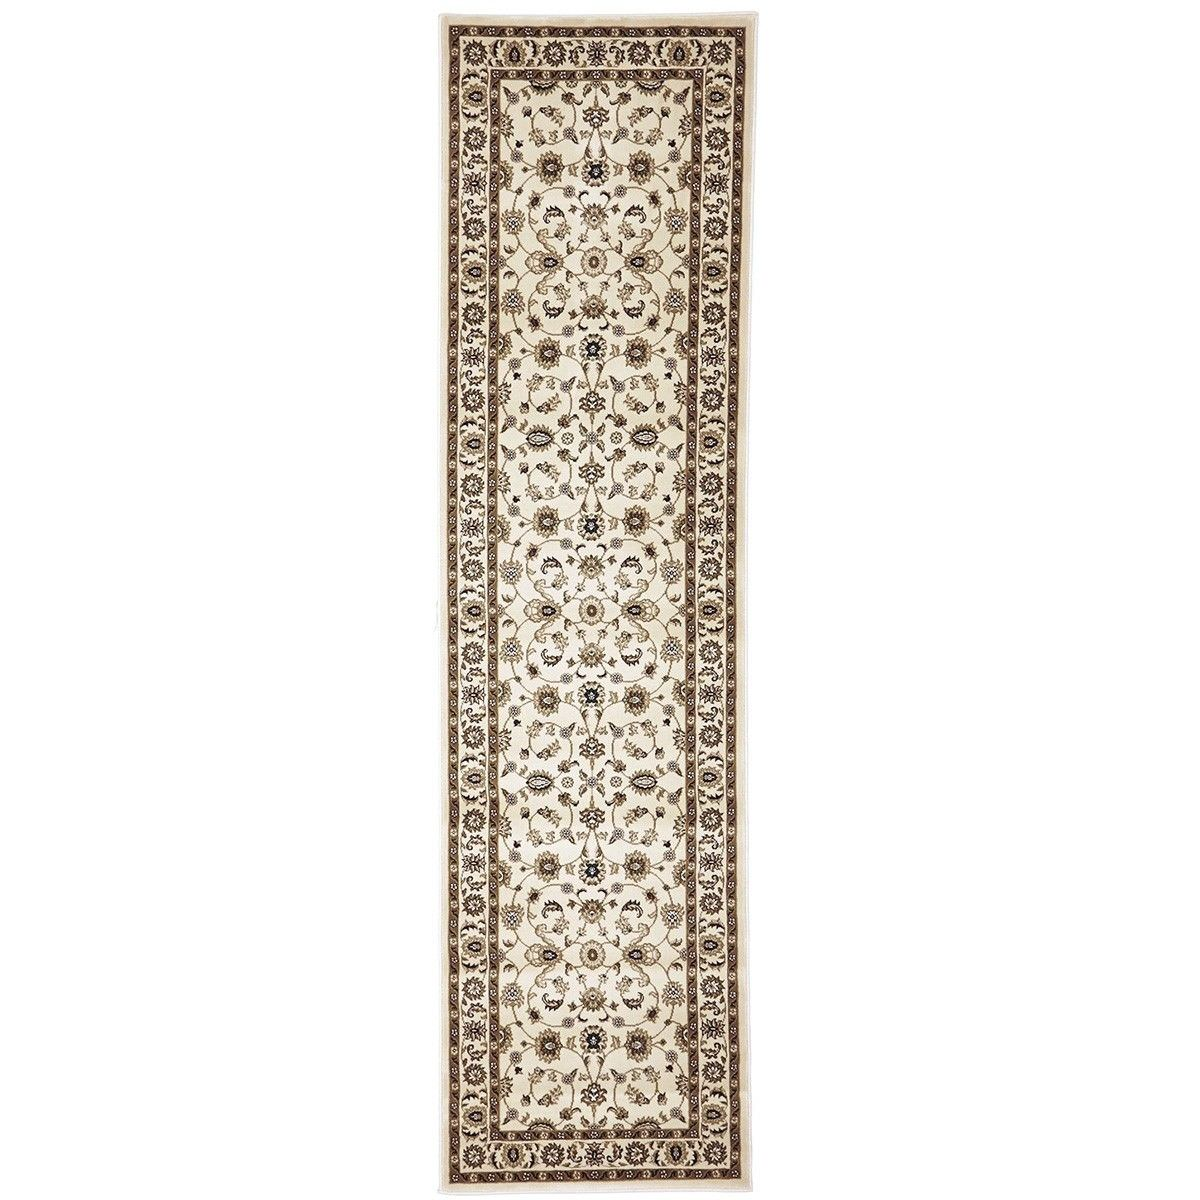 Sydney Classic Turkish Made Oriental Runner Rug, 400x80cm, Ivory